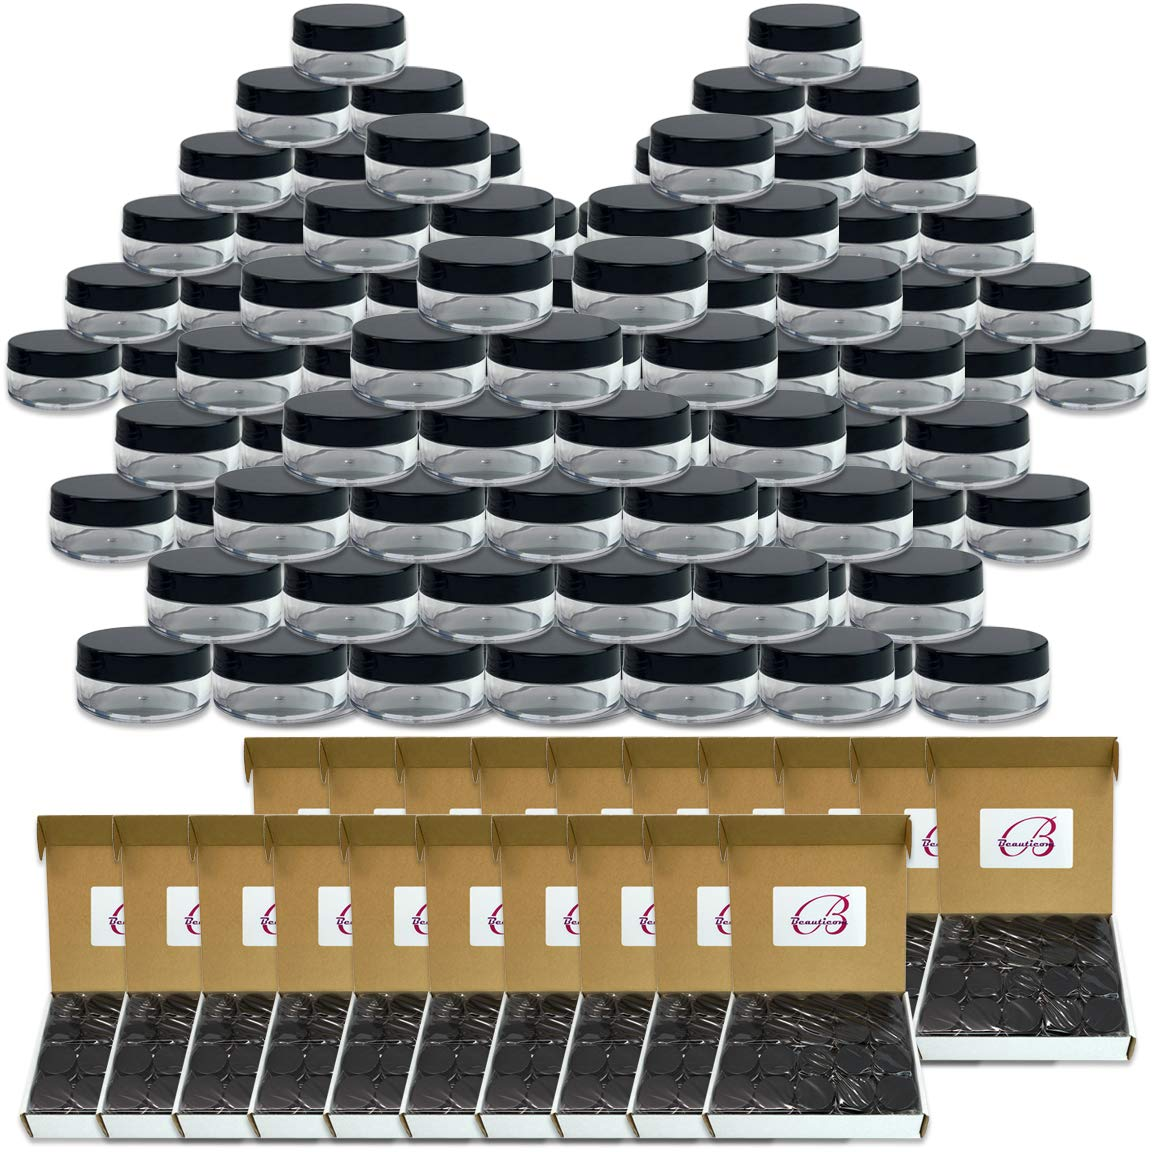 (Quantity: 1000 Pieces) Beauticom 10G/10ML Round Clear Jars with Black Lids for Cosmetics, Medication, Lab and Field Research Samples, Beauty and Health Aids - BPA Free by Beauticom